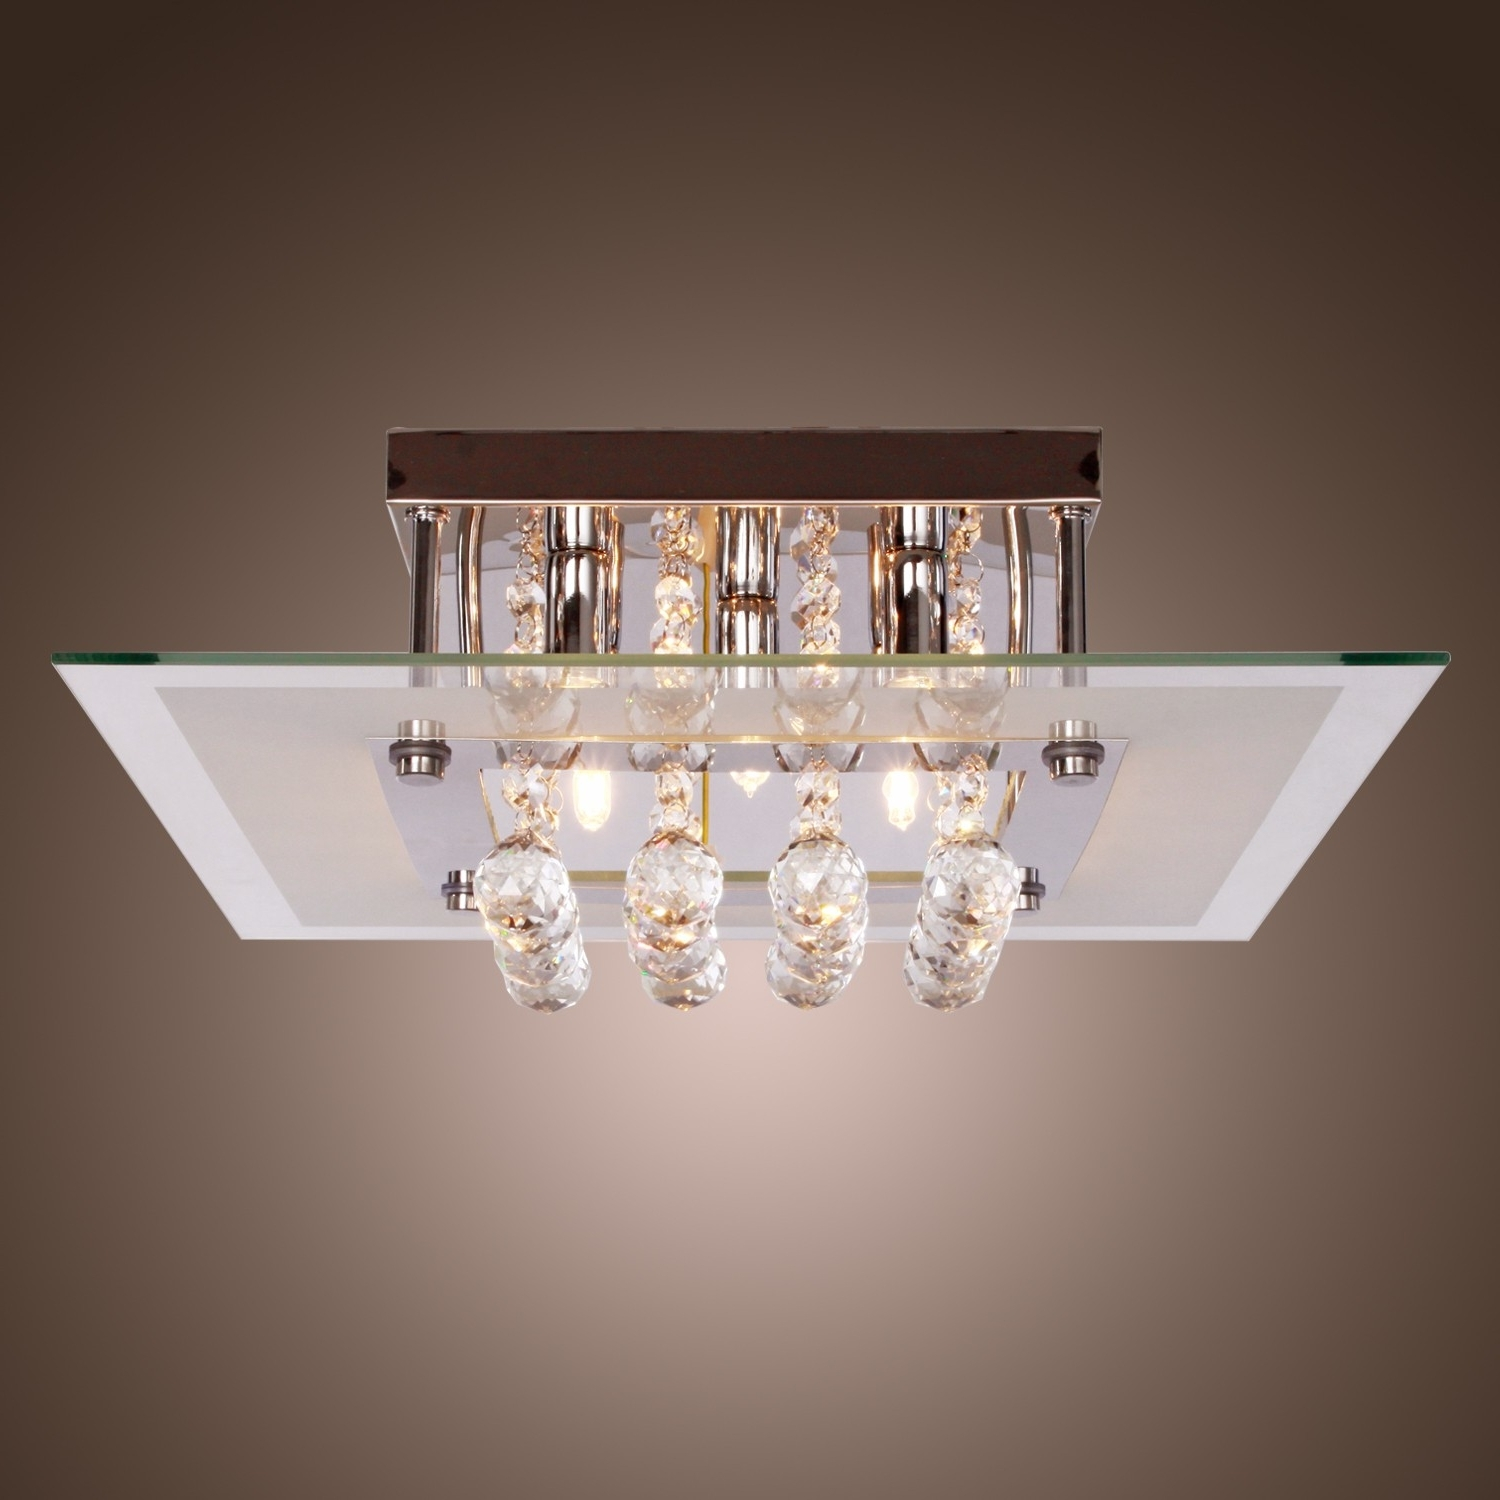 Wall Mounted Chandelier Lighting Within Fashionable Light : Wall Mounted Ceiling Lights (View 18 of 20)